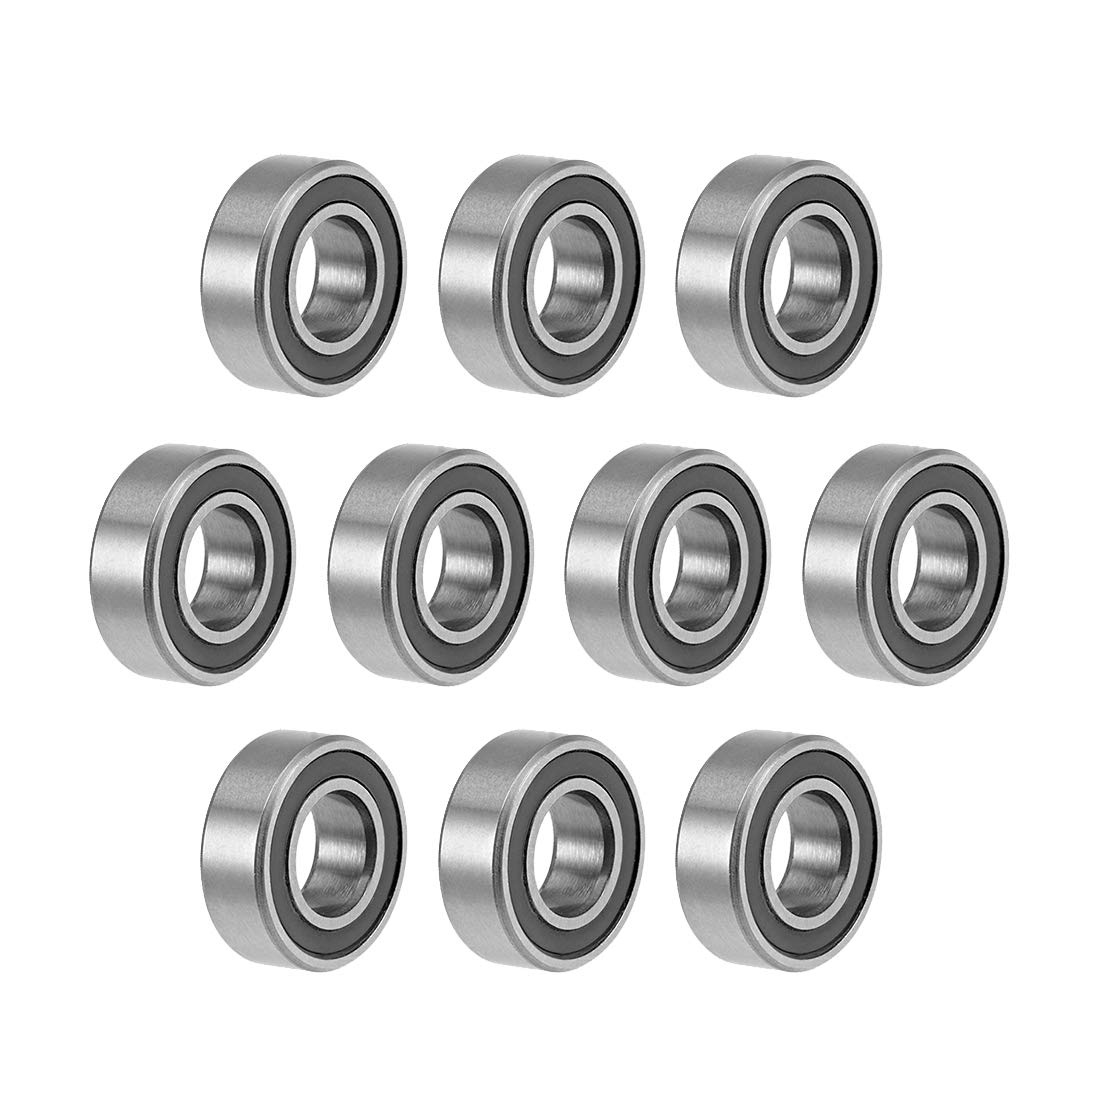 uxcell MR126-2RS Deep Groove Ball Bearings 6mm Inner Dia 12mm OD 4mm Bore Double Sealed Chrome Steel Z2 10pcs